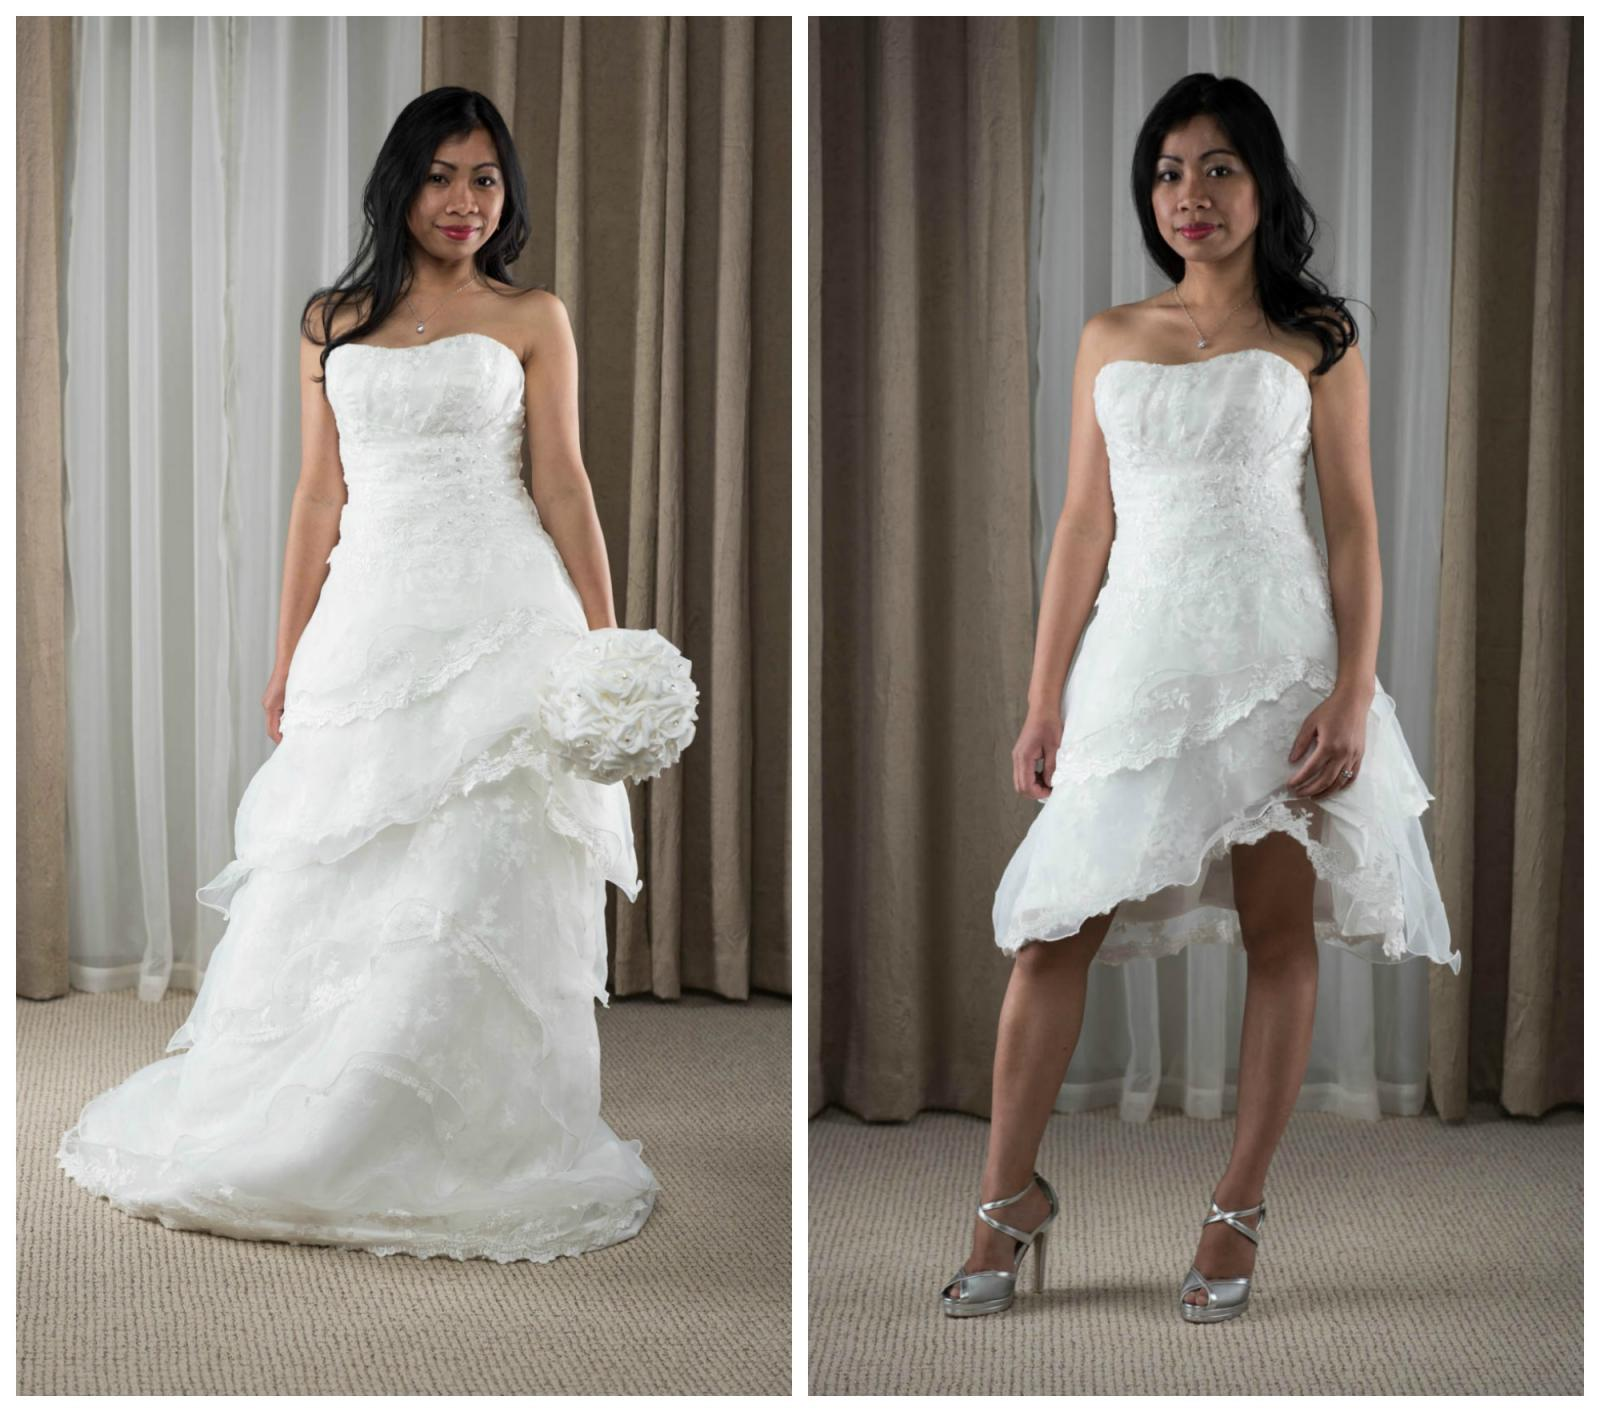 2 in 1 Sweetheart Back Wedding Cocktail Dress Ivory Size 4